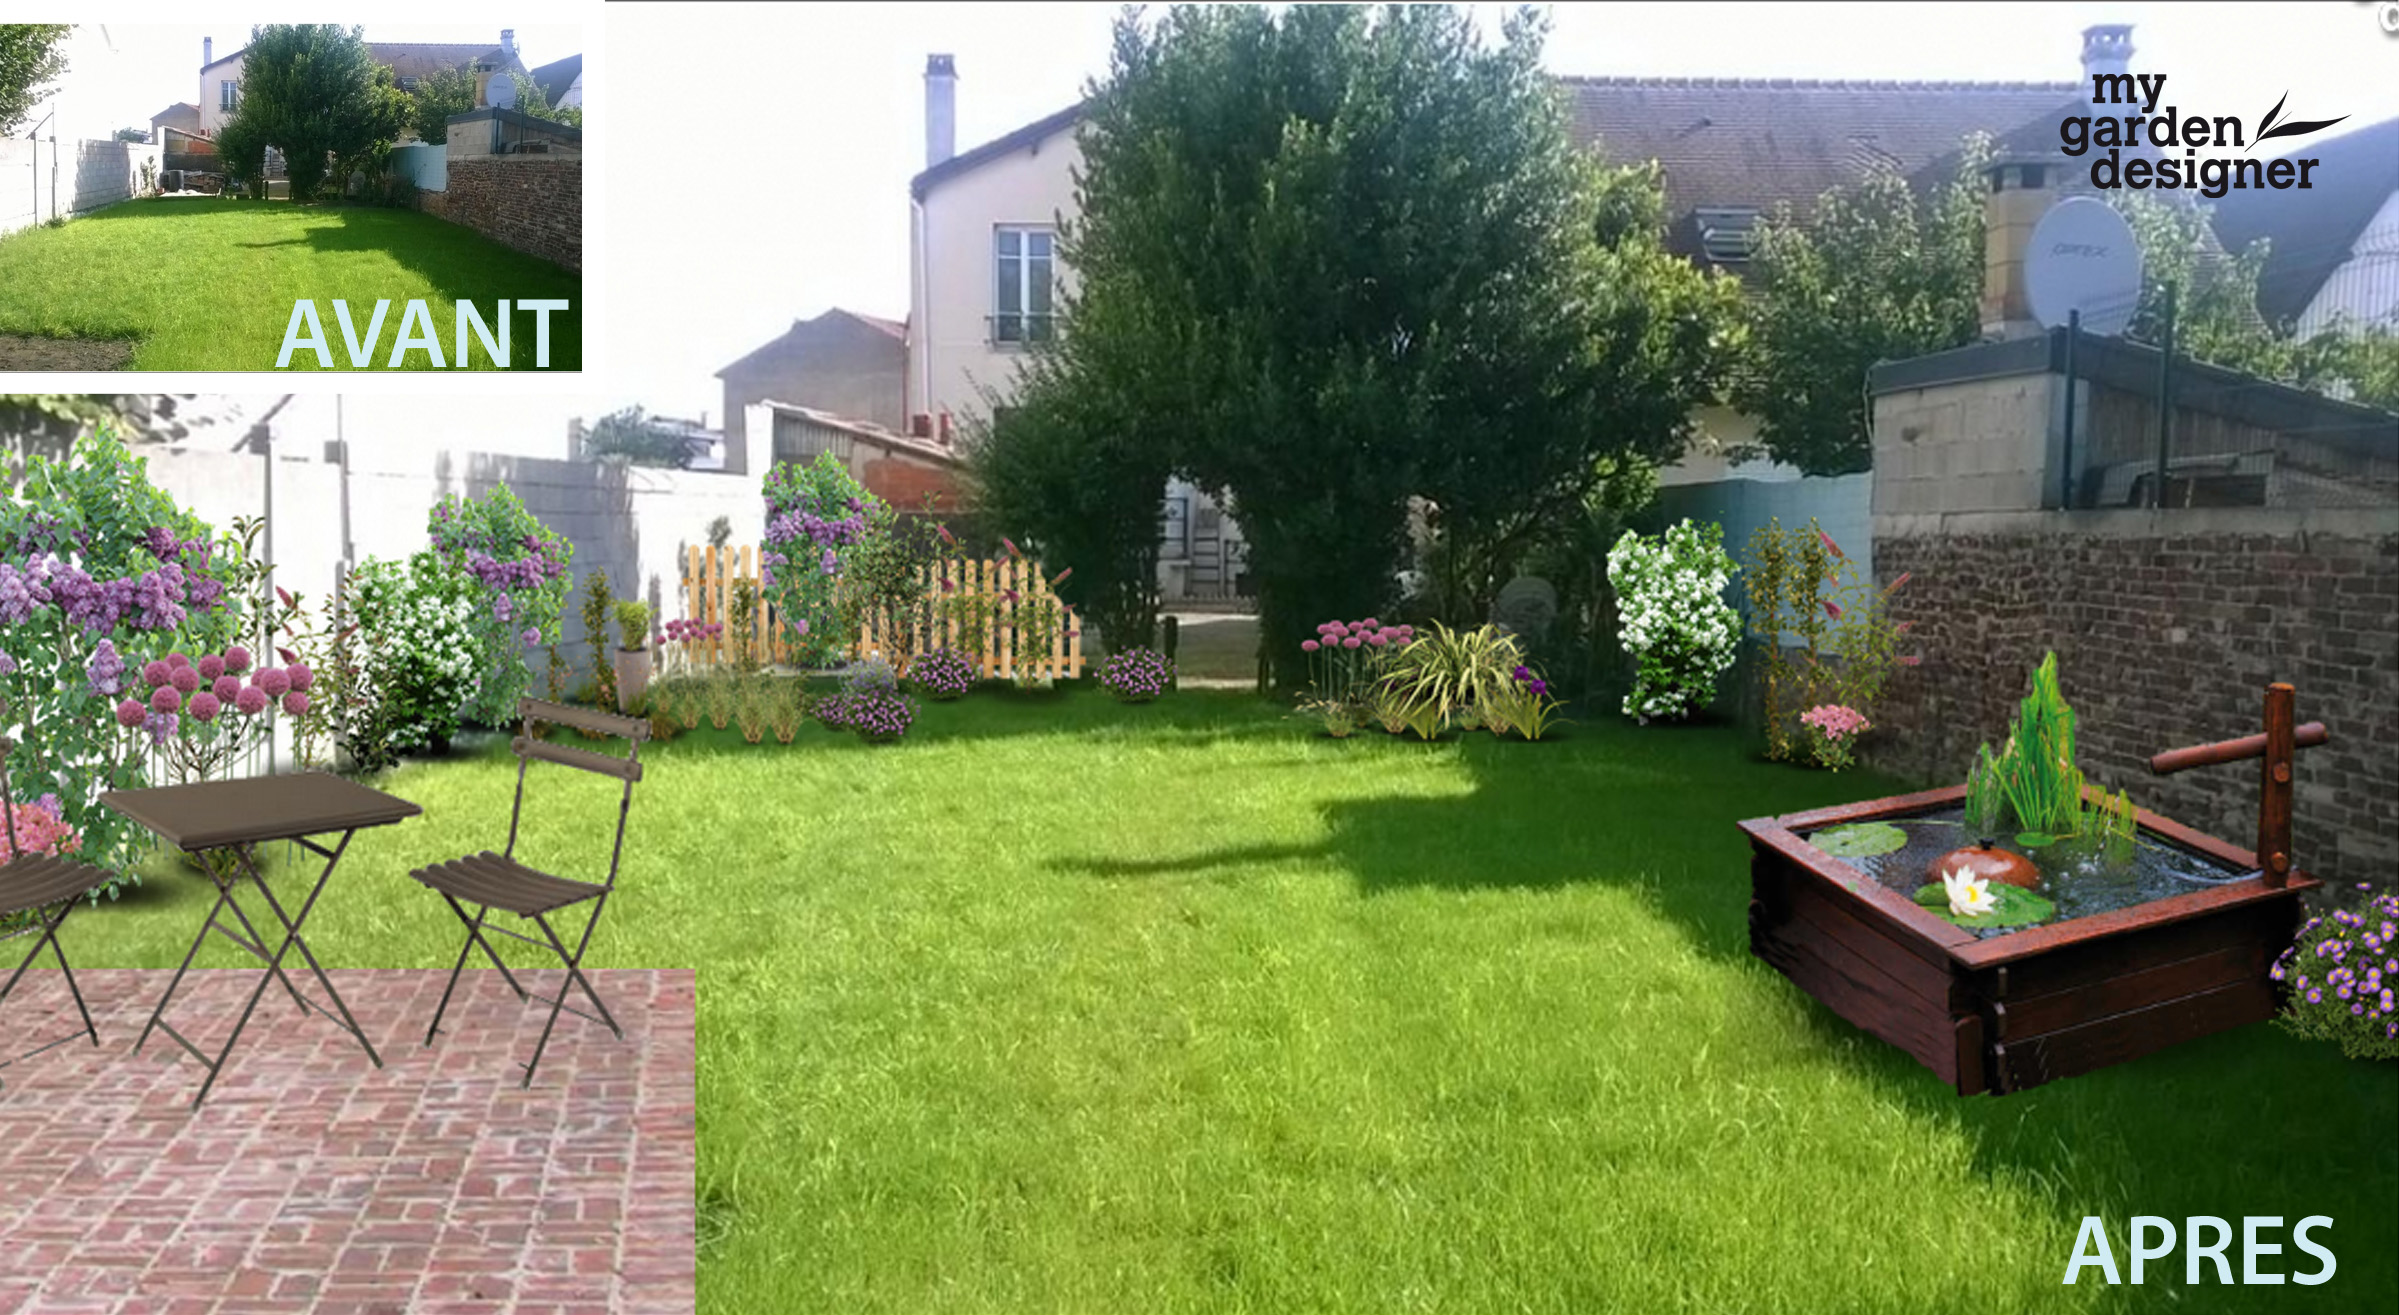 Am nager un jardin carr en ile de france monjardin for Idee pour amenager son jardin